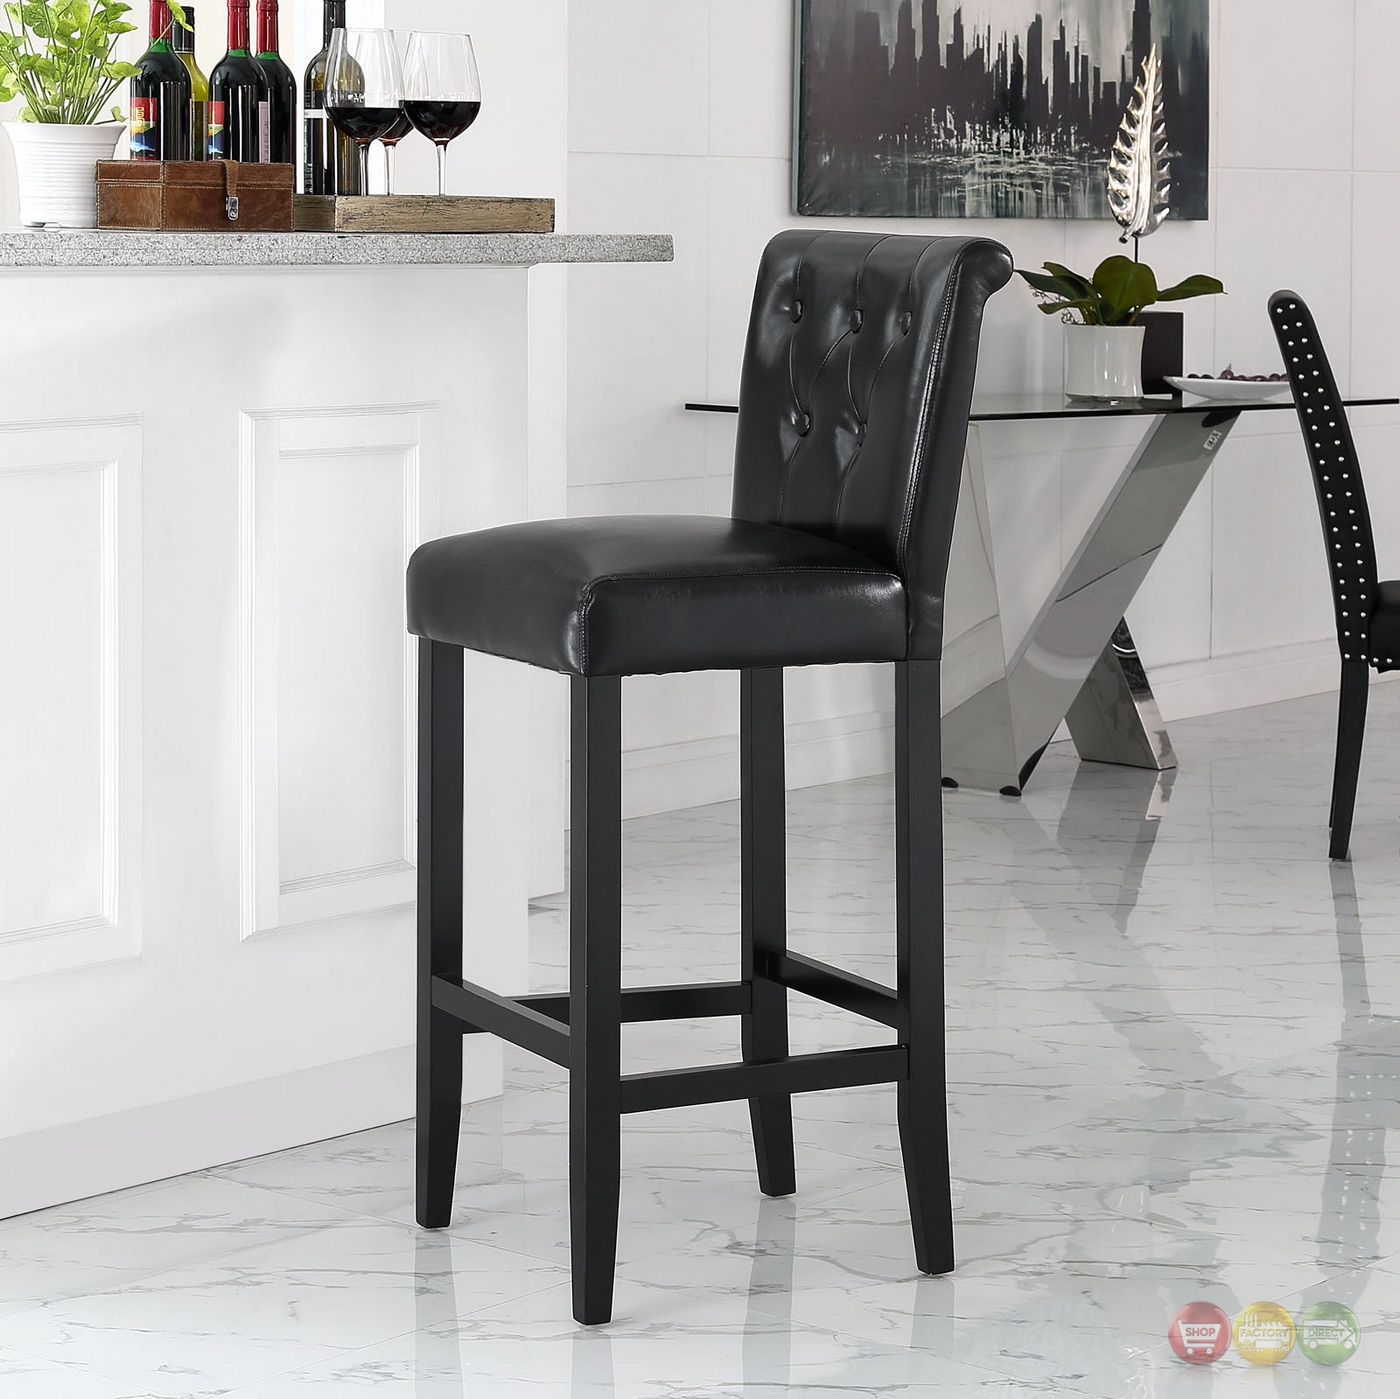 Tender Modern Button Tufted Faux Leather Bar Stool W Foot